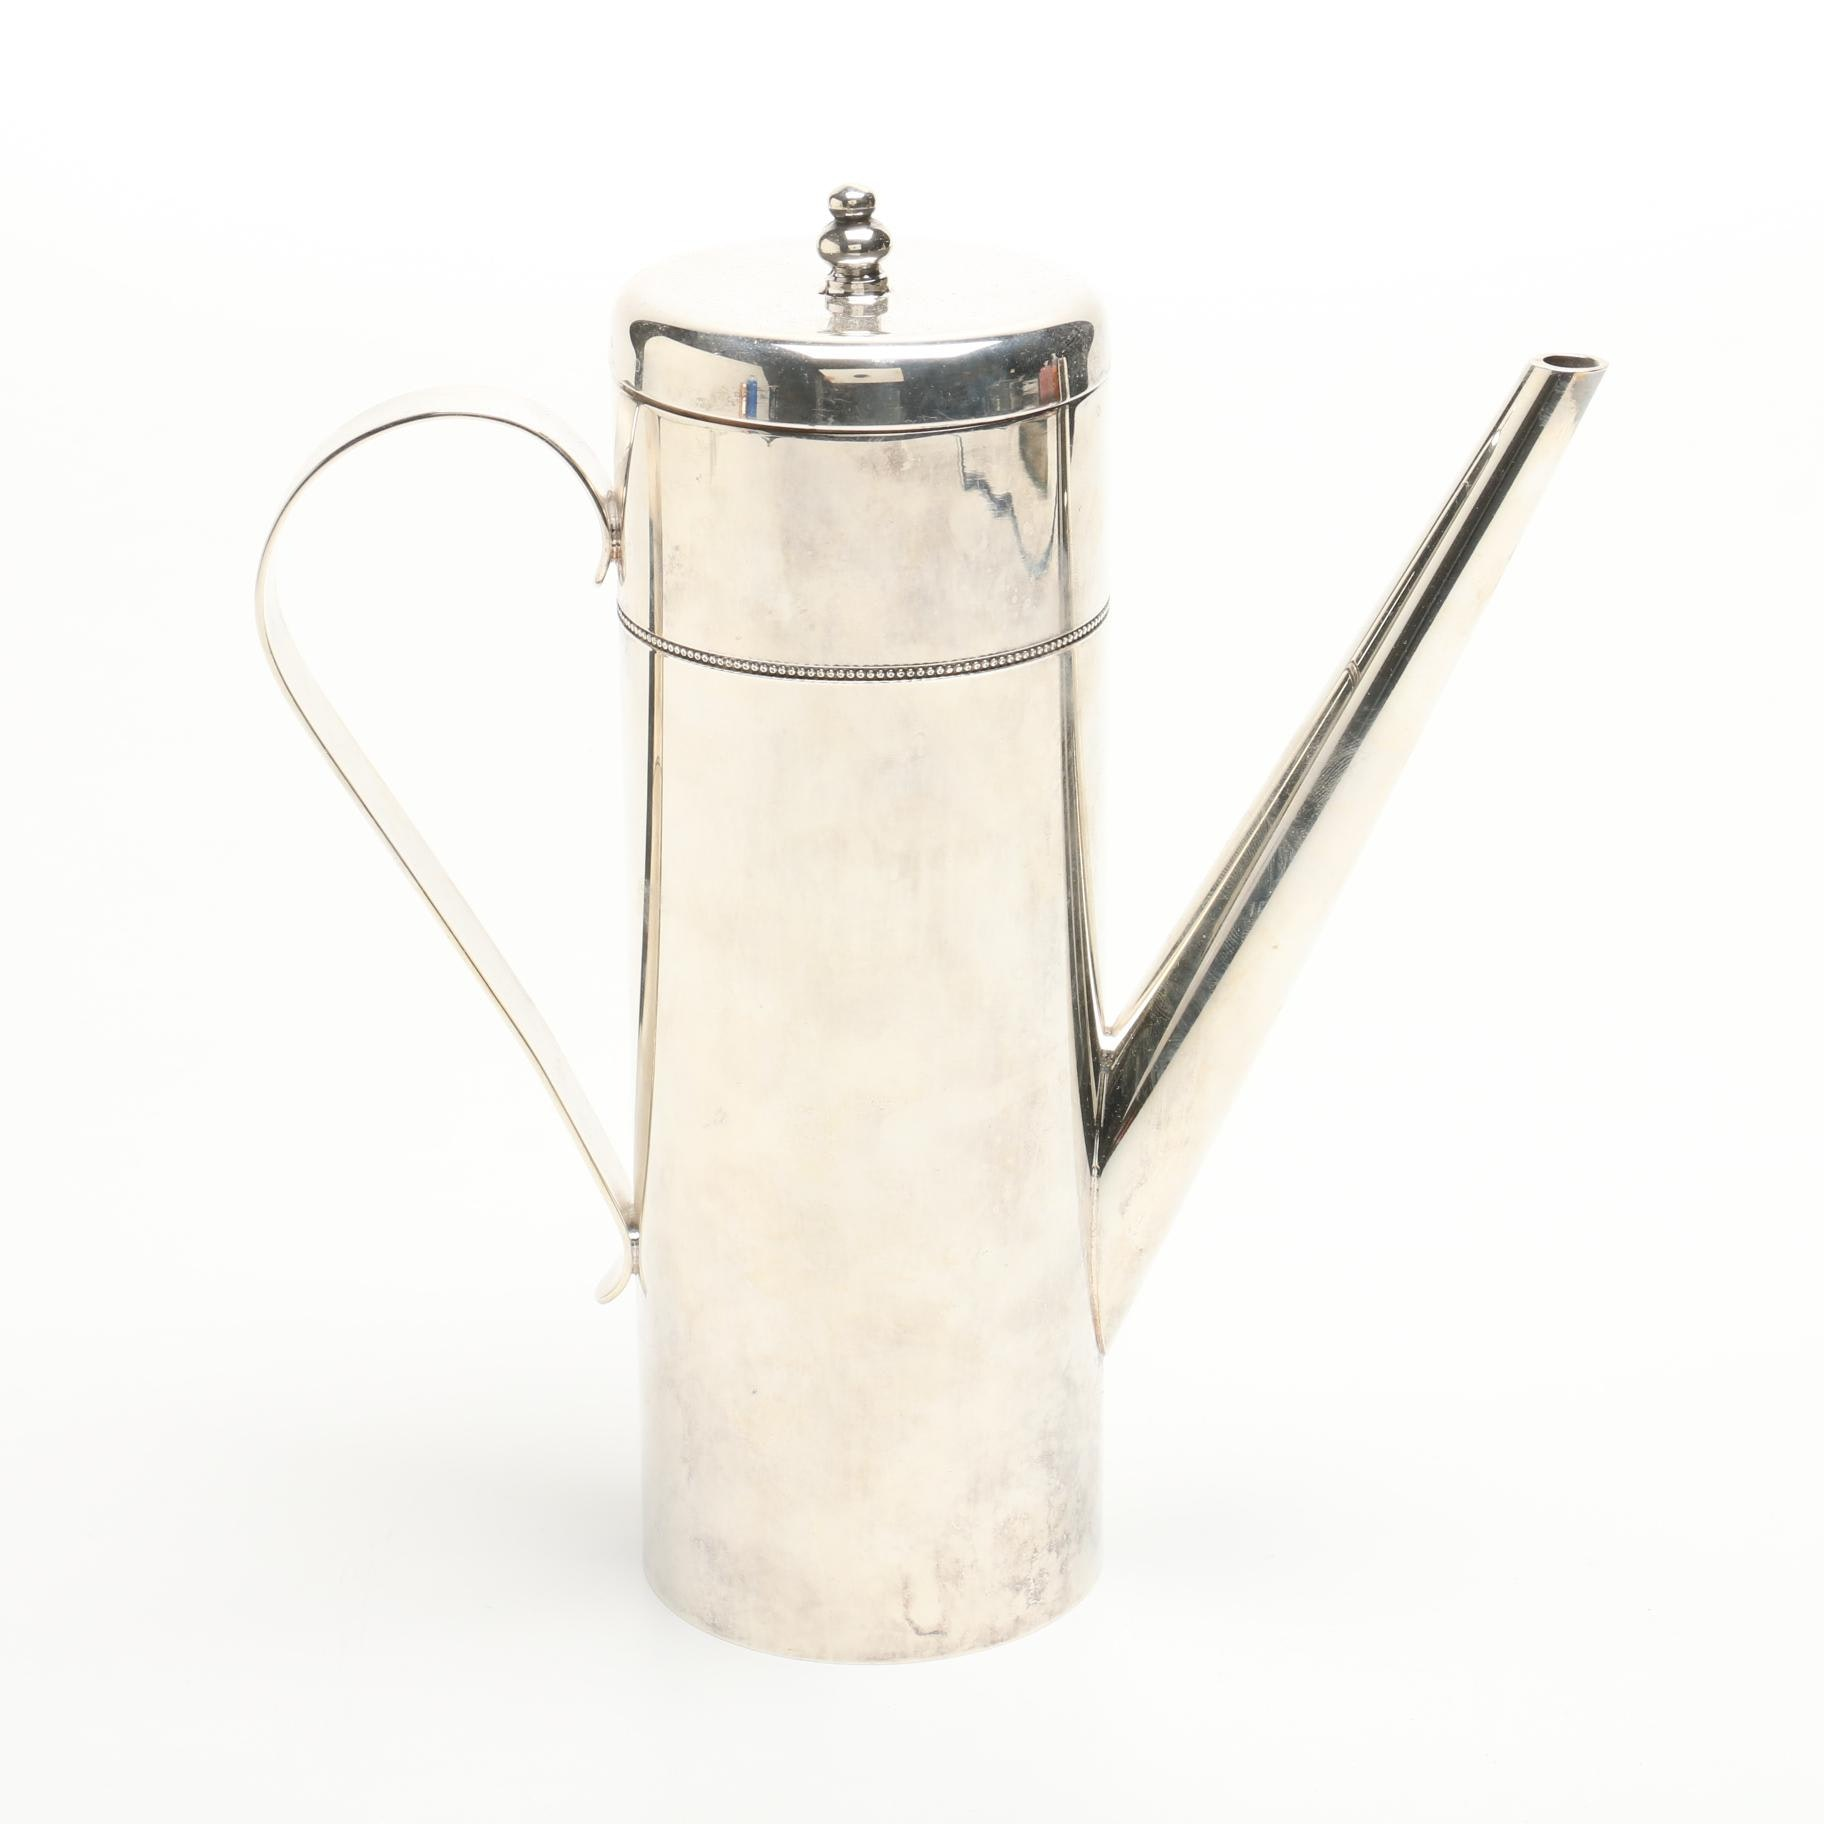 Contemporary Art Deco Style Silver Plated Tea Pot